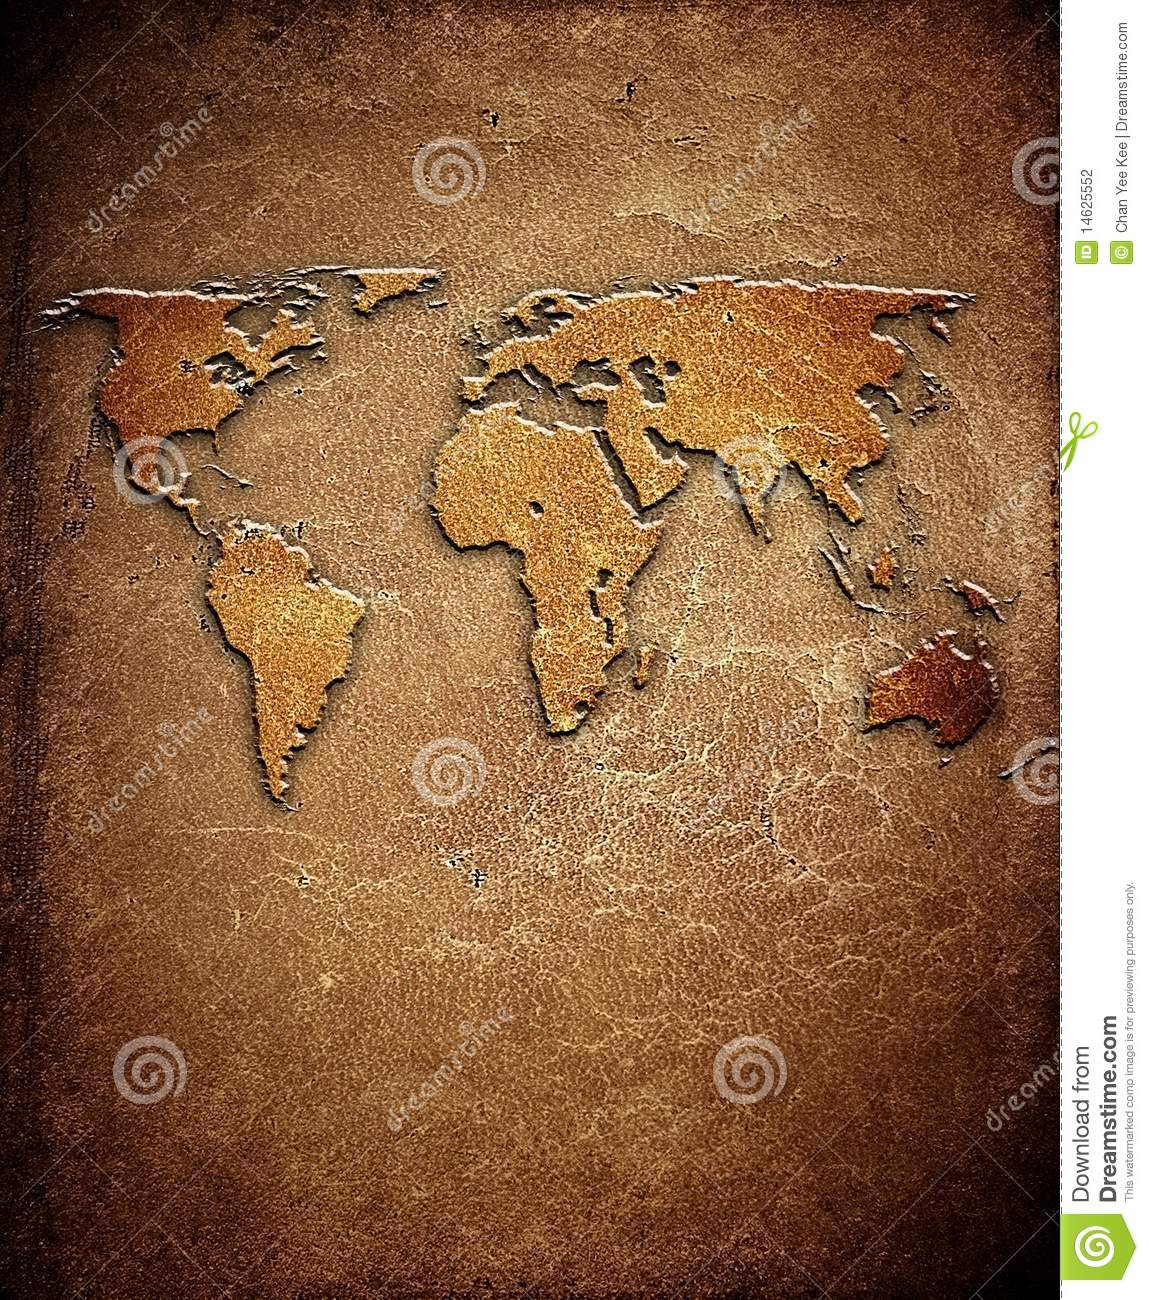 World map on leather background stock illustration illustration of world map on leather background gumiabroncs Gallery